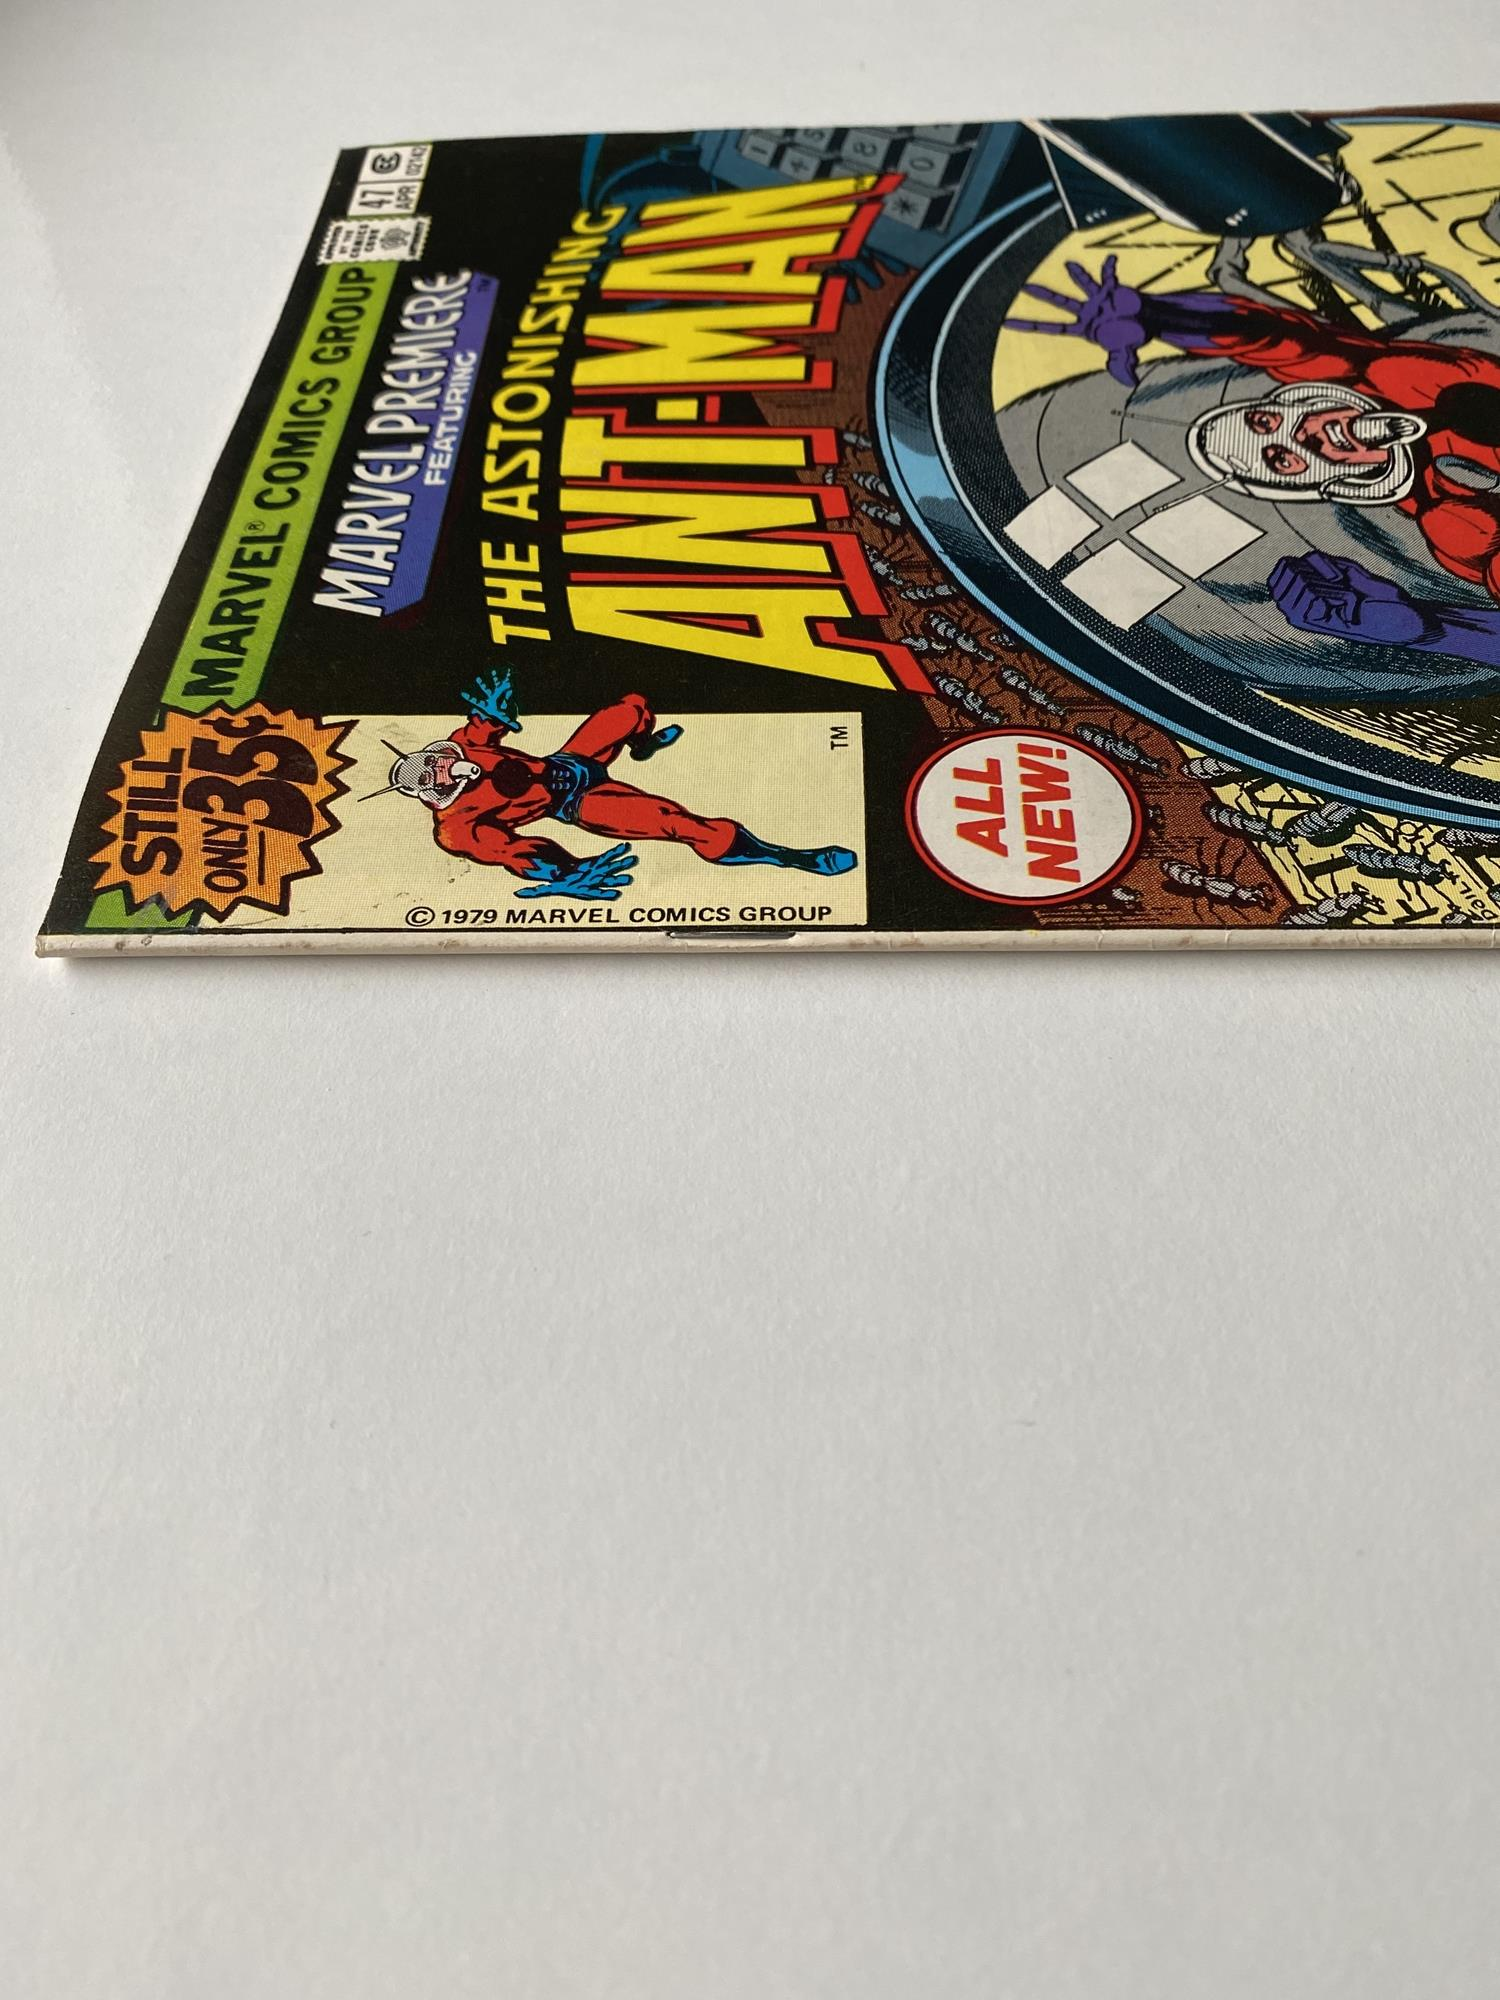 Lot 32 - MARVEL PREMIERE: ANT-MAN # 47 (1979 - MARVEL - Cents Copy) - First appearance of 'Movie' Ant-Man